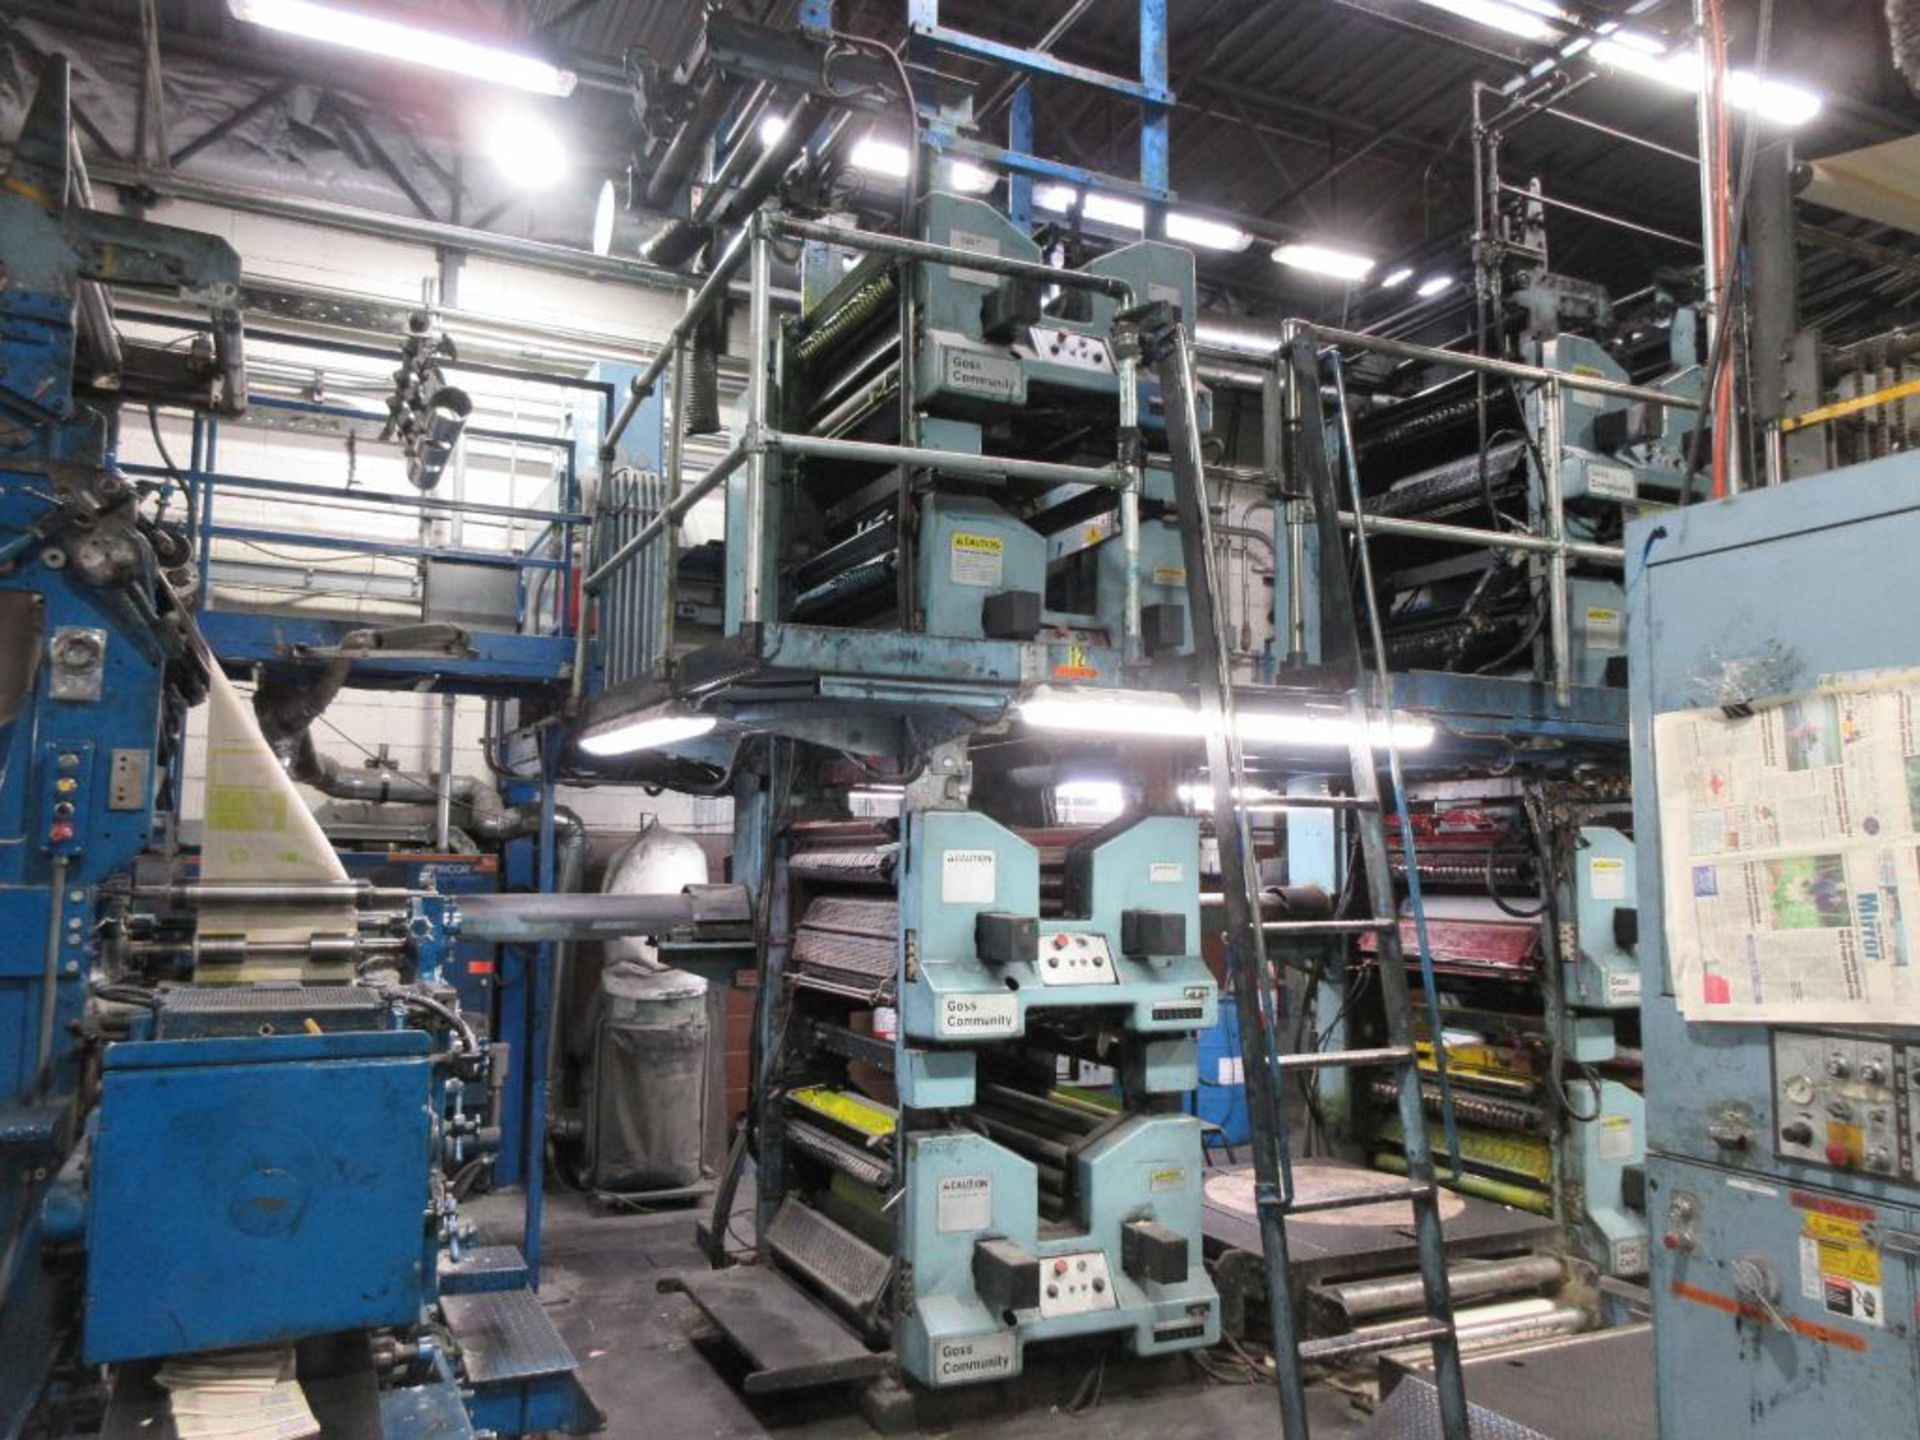 "Complete Goss/Ventura 22.75"" cut off 50 unit web offset press featuring: Ventura 30 4 high (0), Vent - Image 24 of 58"